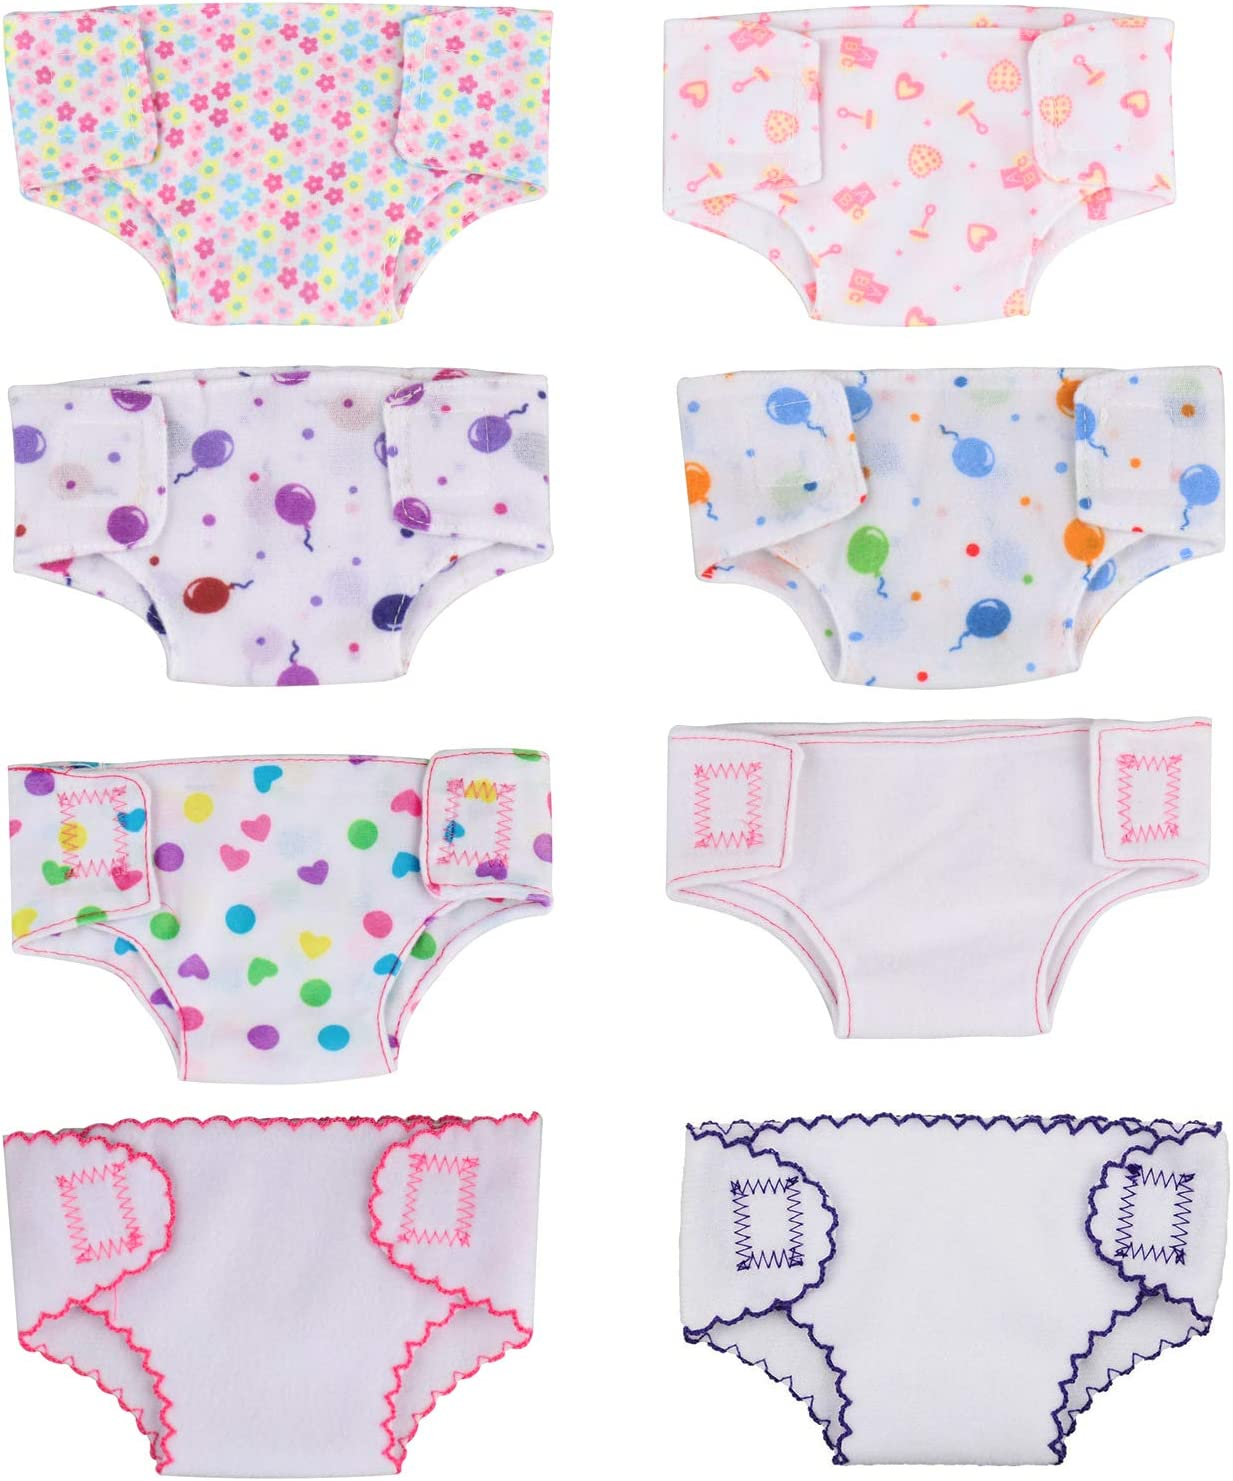 SOTOGO 8 Pieces Doll Diapers Doll Underwear for 18 Inch American Girl Doll and Baby Doll